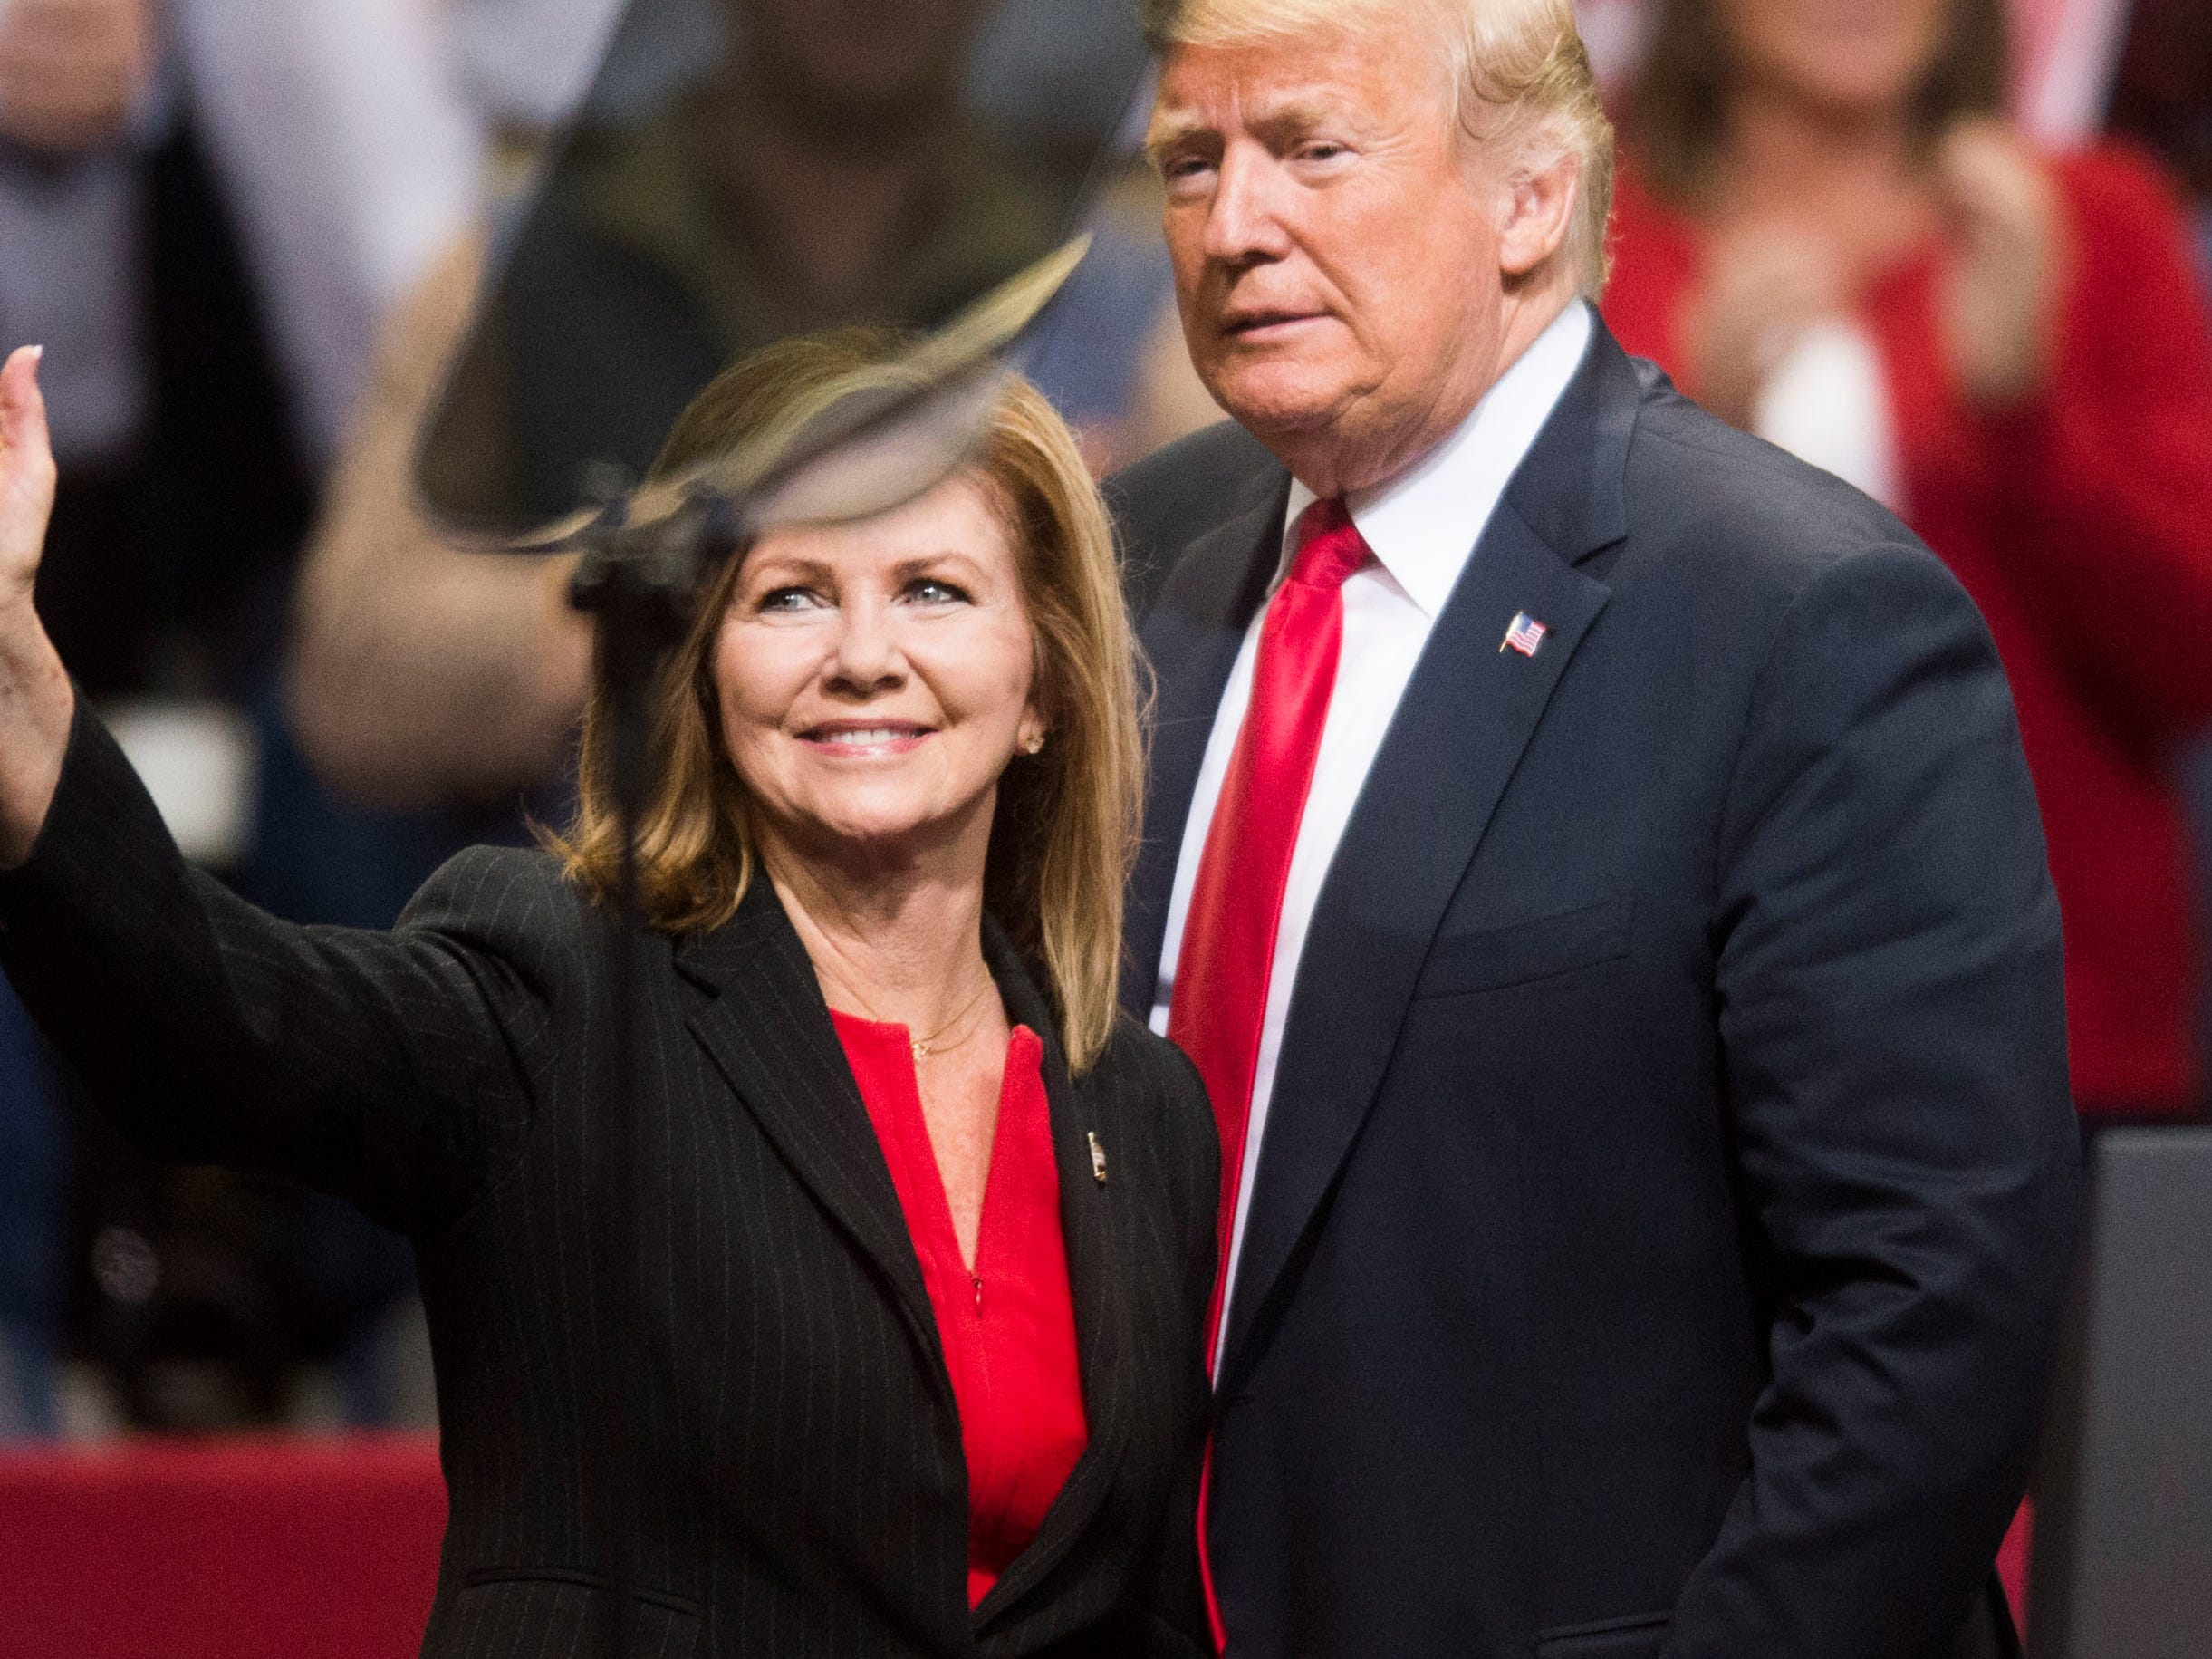 President Donald Trump greets U.S. Rep. Marsha Blackburn during a Donald Trump rally in support of U.S. Rep. Marsha Blackburn for the U.S. Senate at McKenzie Arena in Chattanooga, Sunday, Nov. 4, 2018.